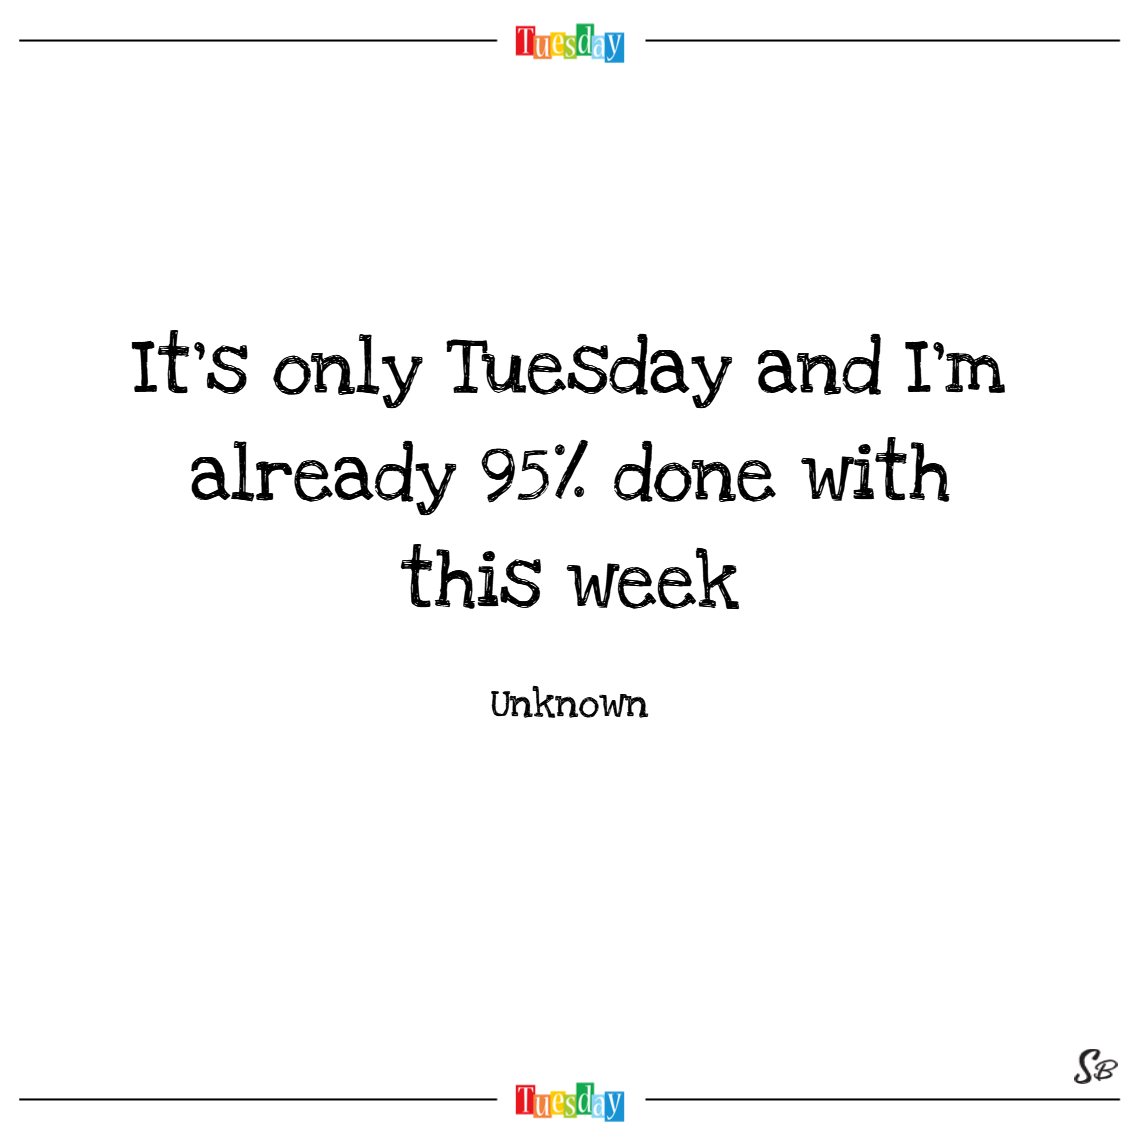 It's only tuesday and i'm already 95% done with this week. – unknown